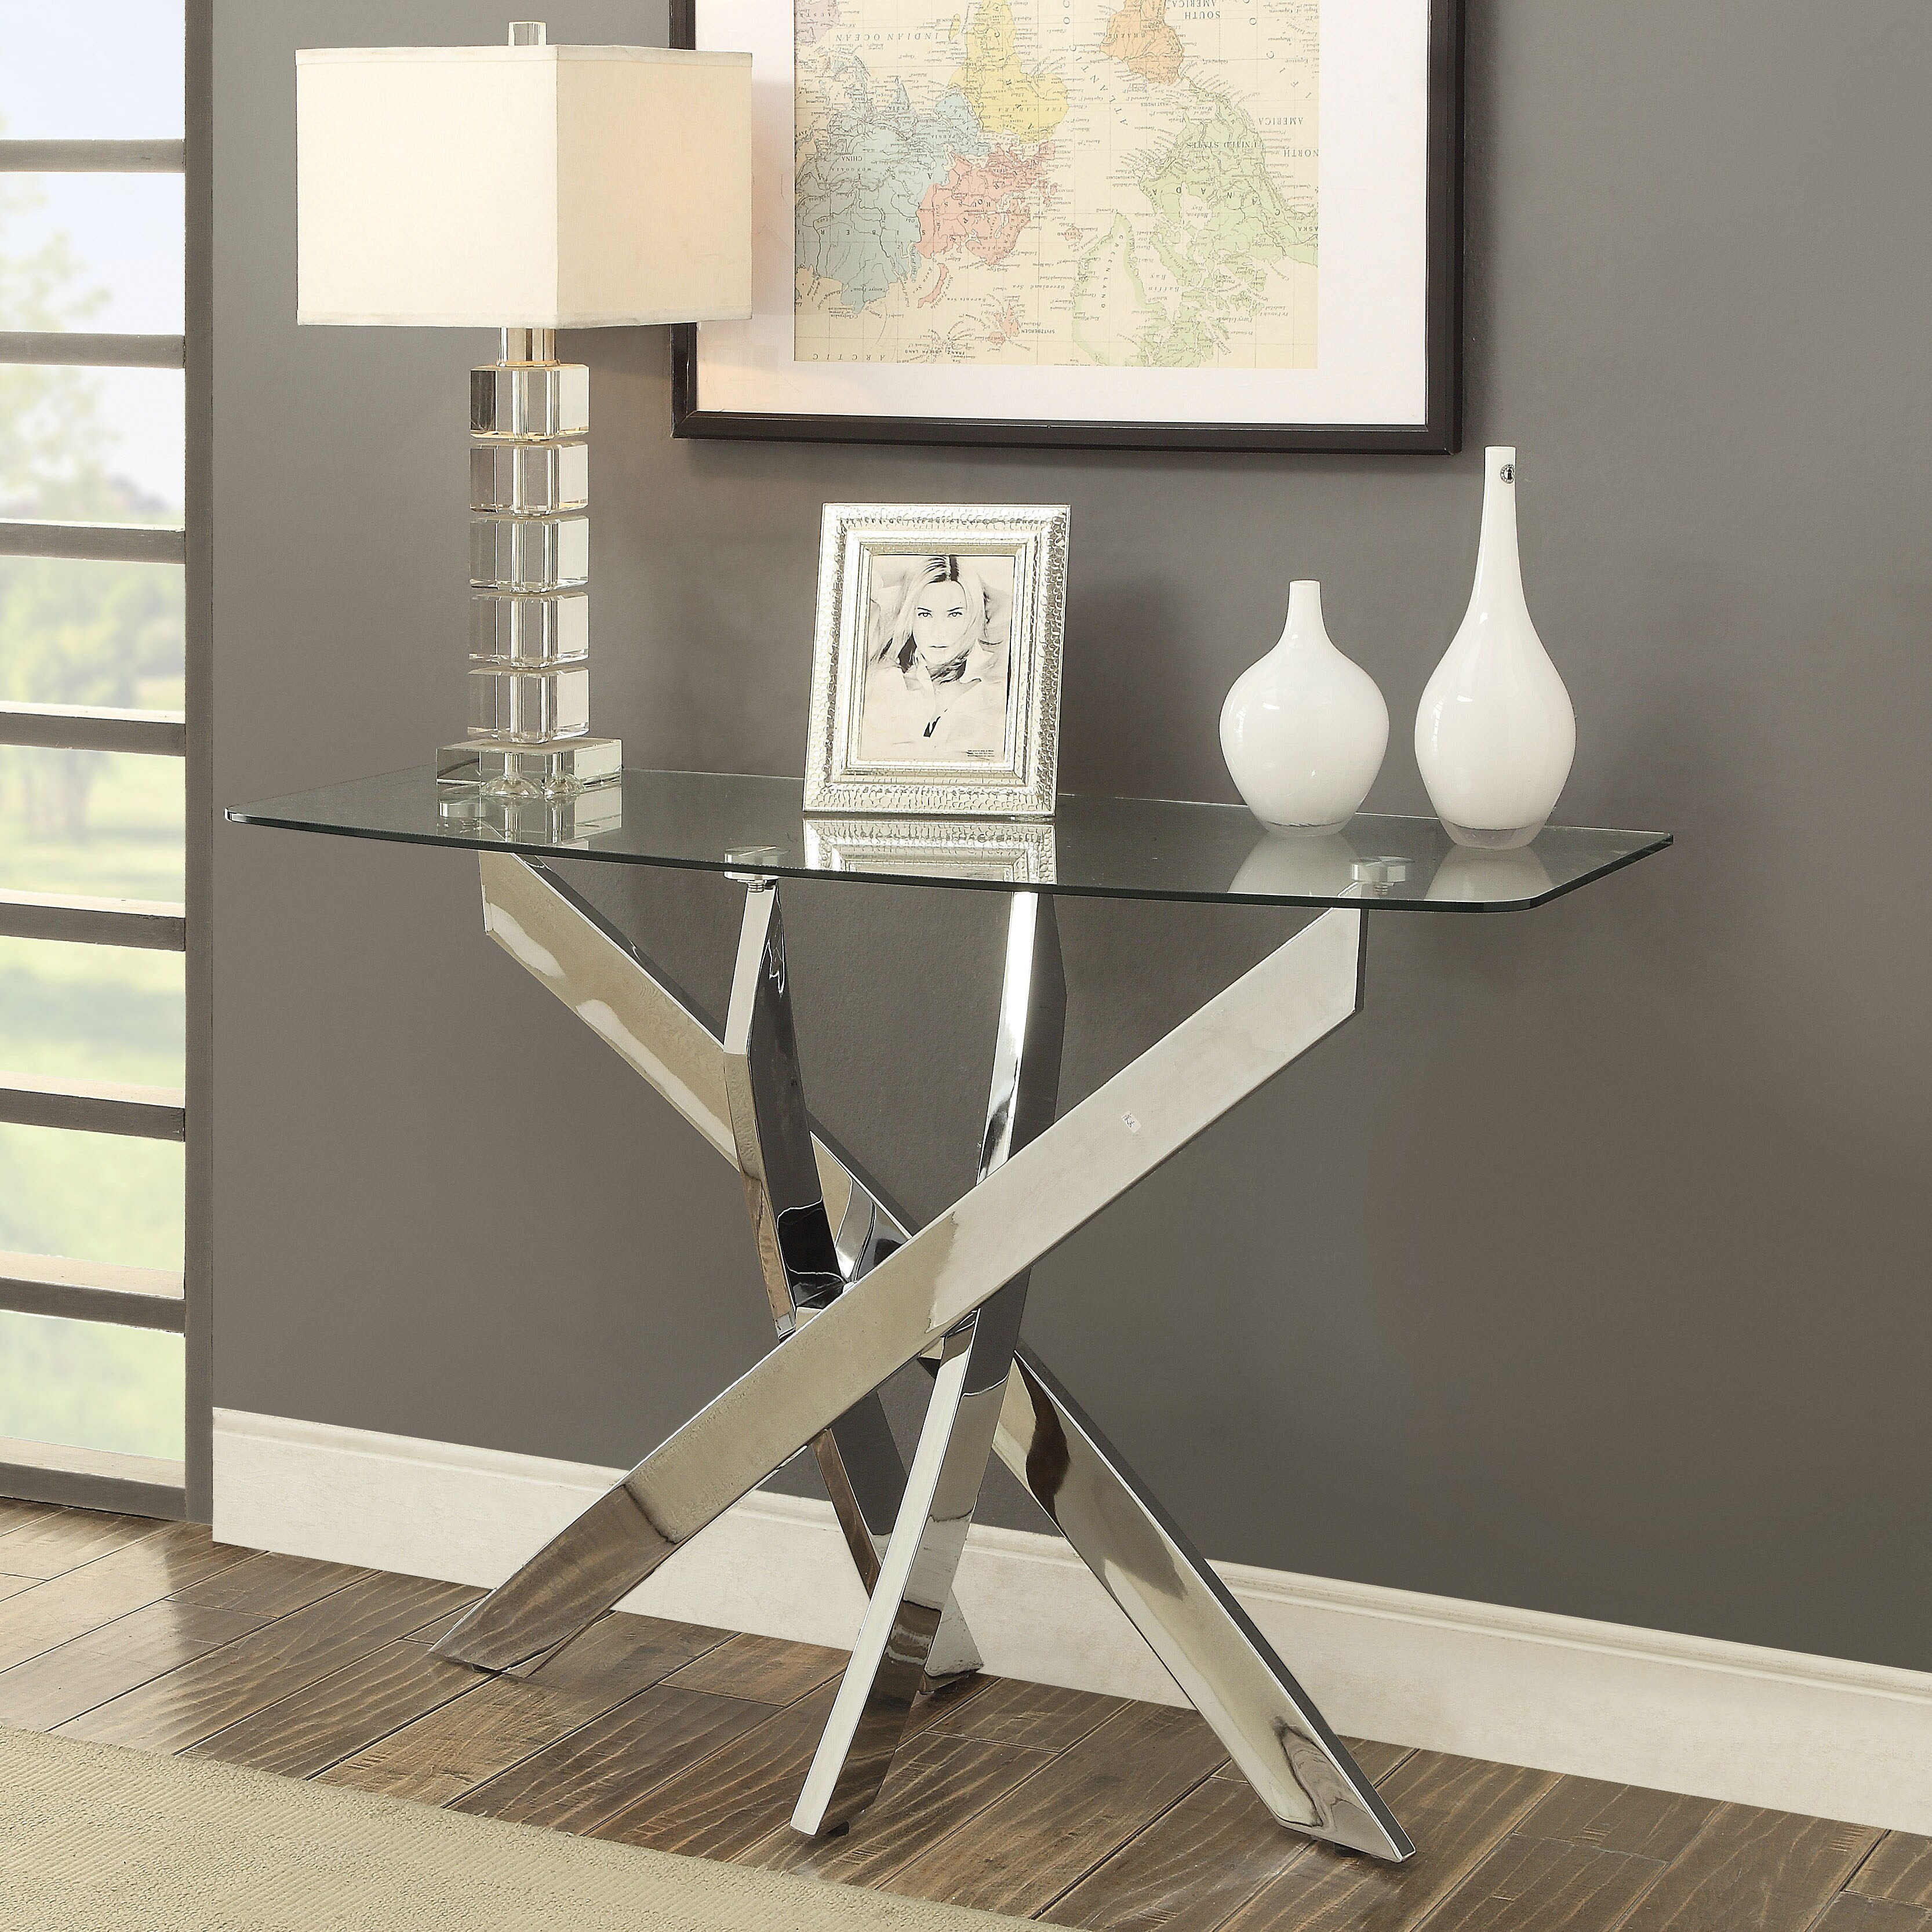 Shop furniture of america propel modern glass top chrome sofa table on sale free shipping today overstock com 14538643